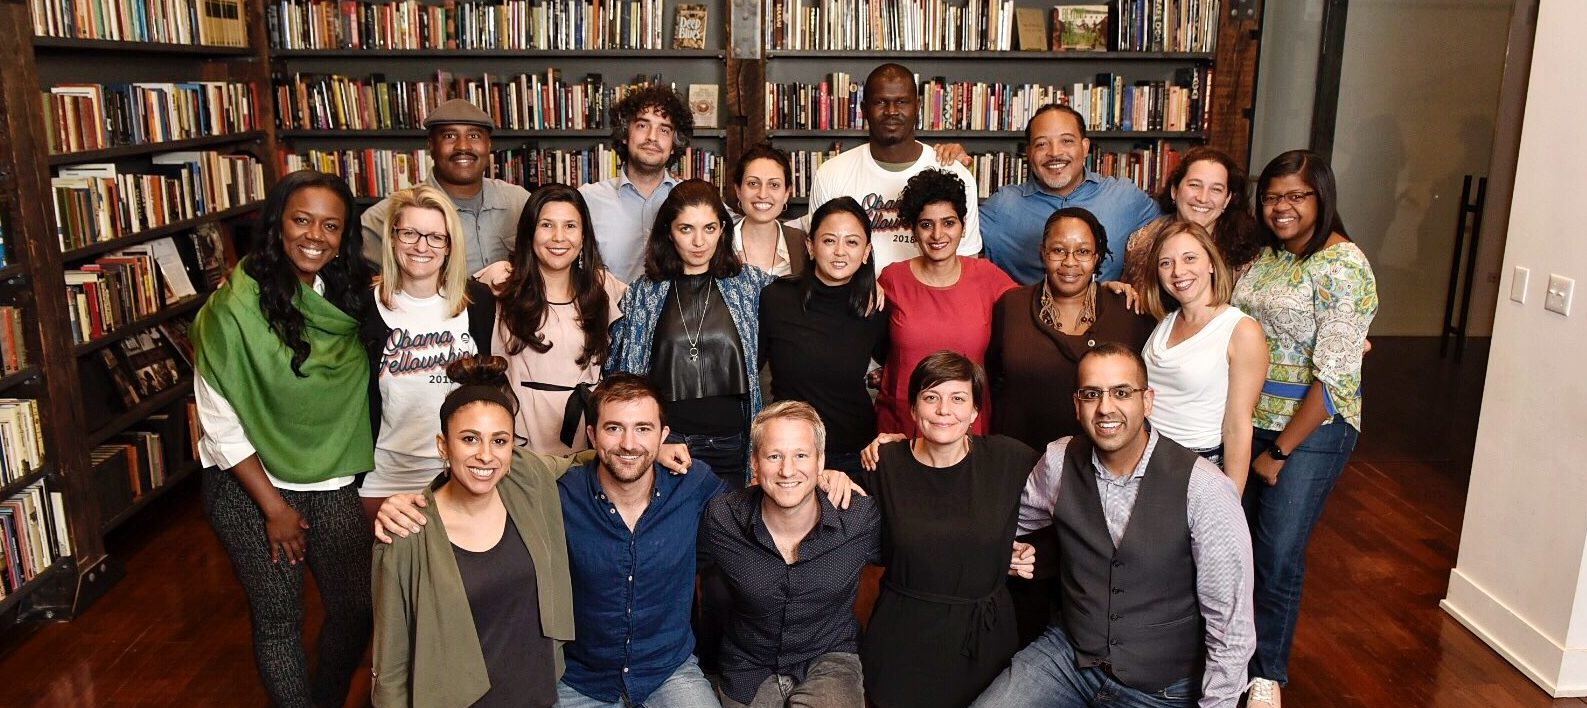 The 2018 Class of Obama Foundation Fellows gathered in Chicago to meet for the first time.